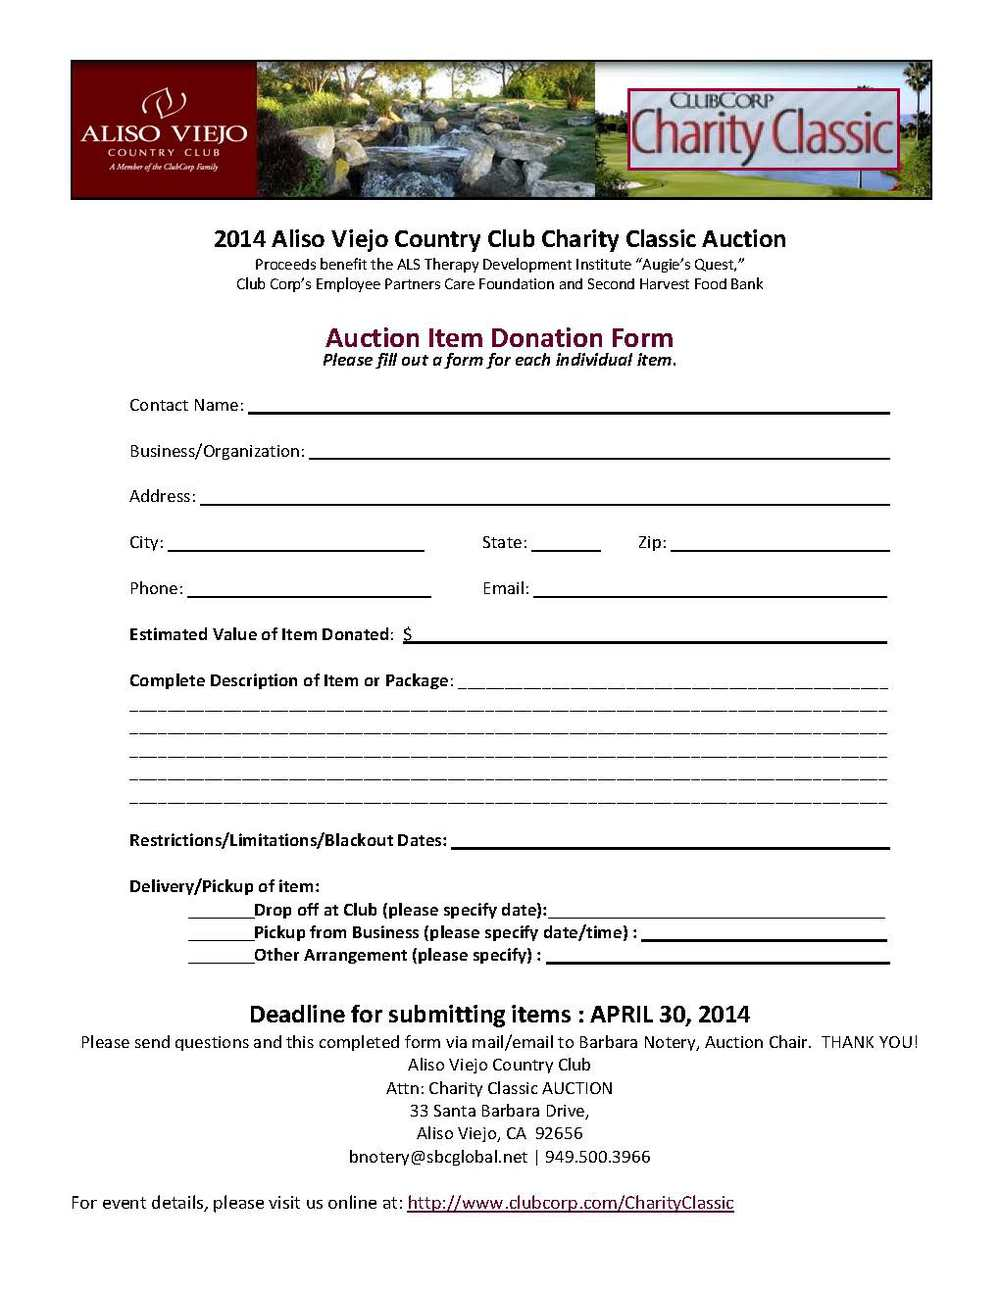 Auction Item Donation Form 14.jpg